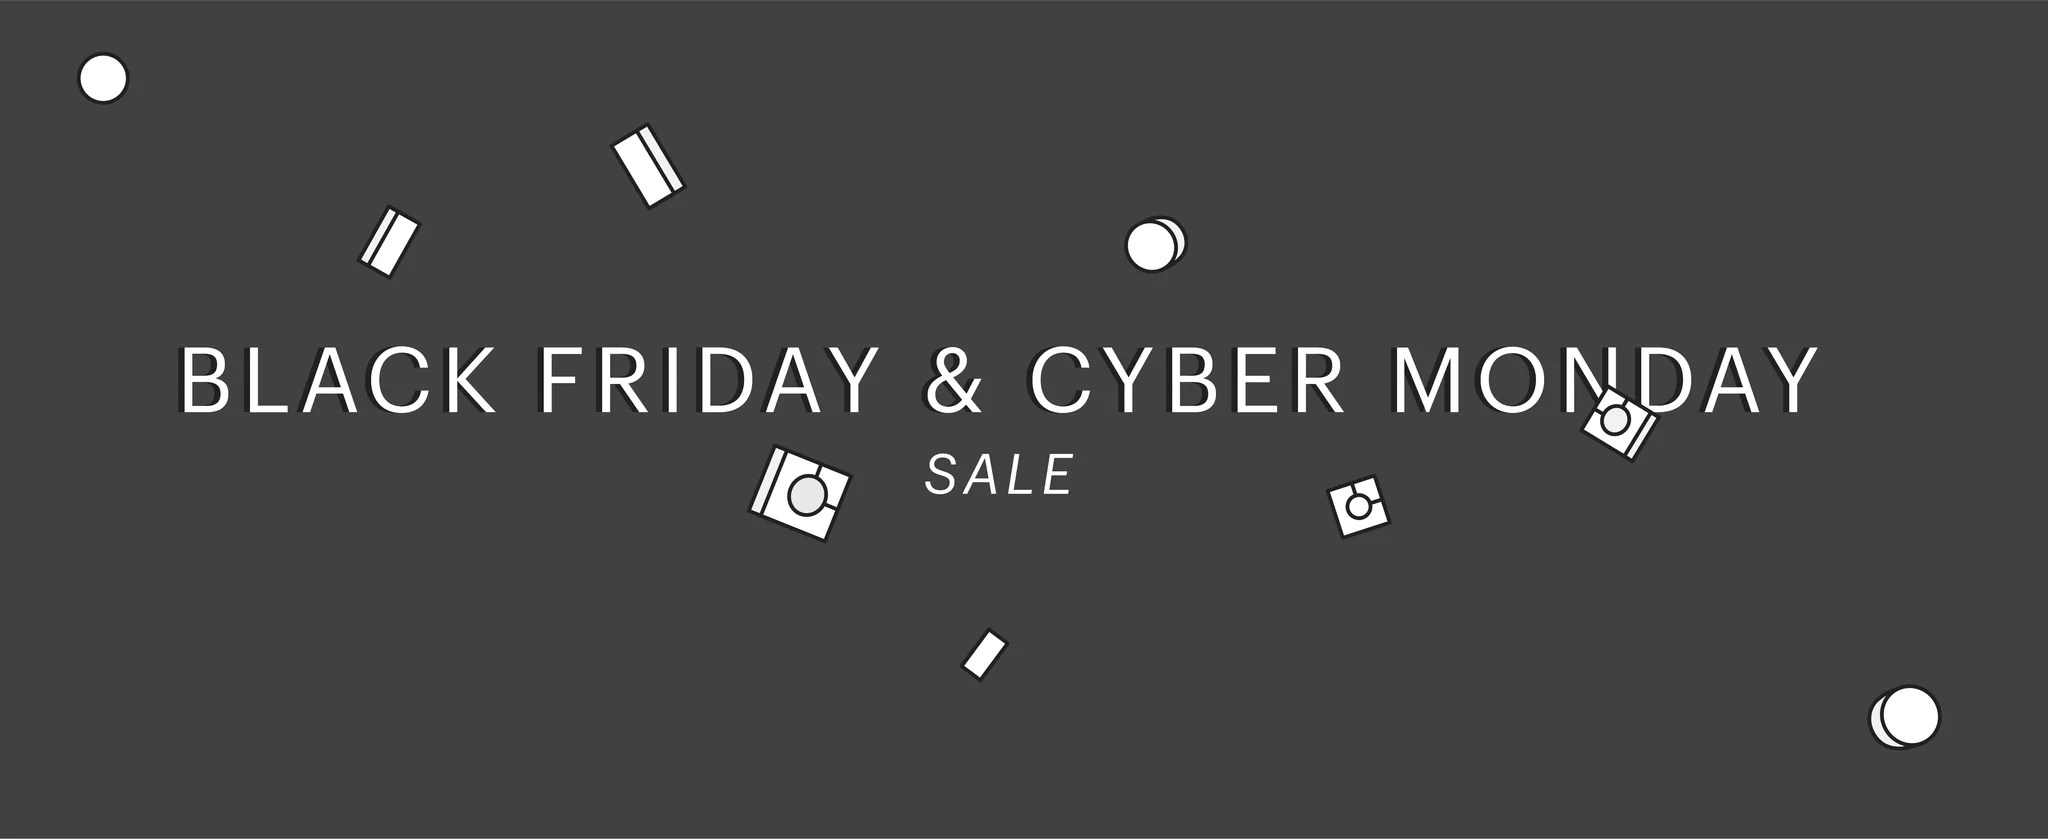 Black Frida Invest In Home Security With August This Black Friday Cyber Monday